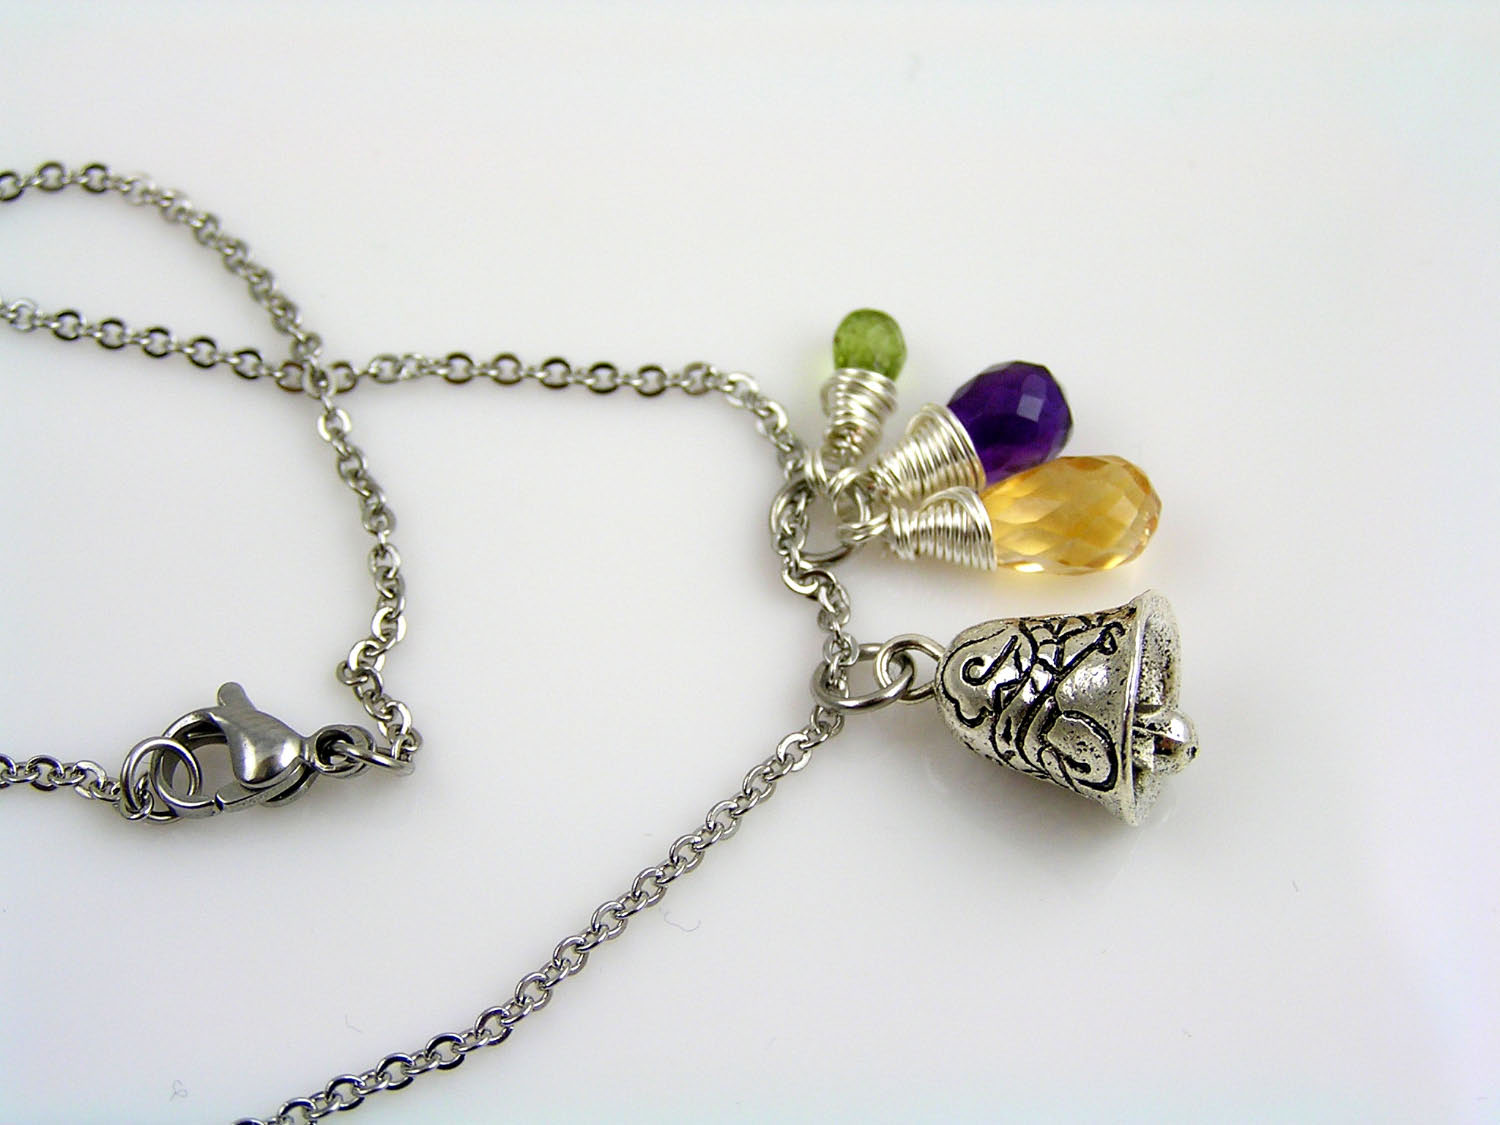 Gemstone Necklace with Gremlin Bell Charm